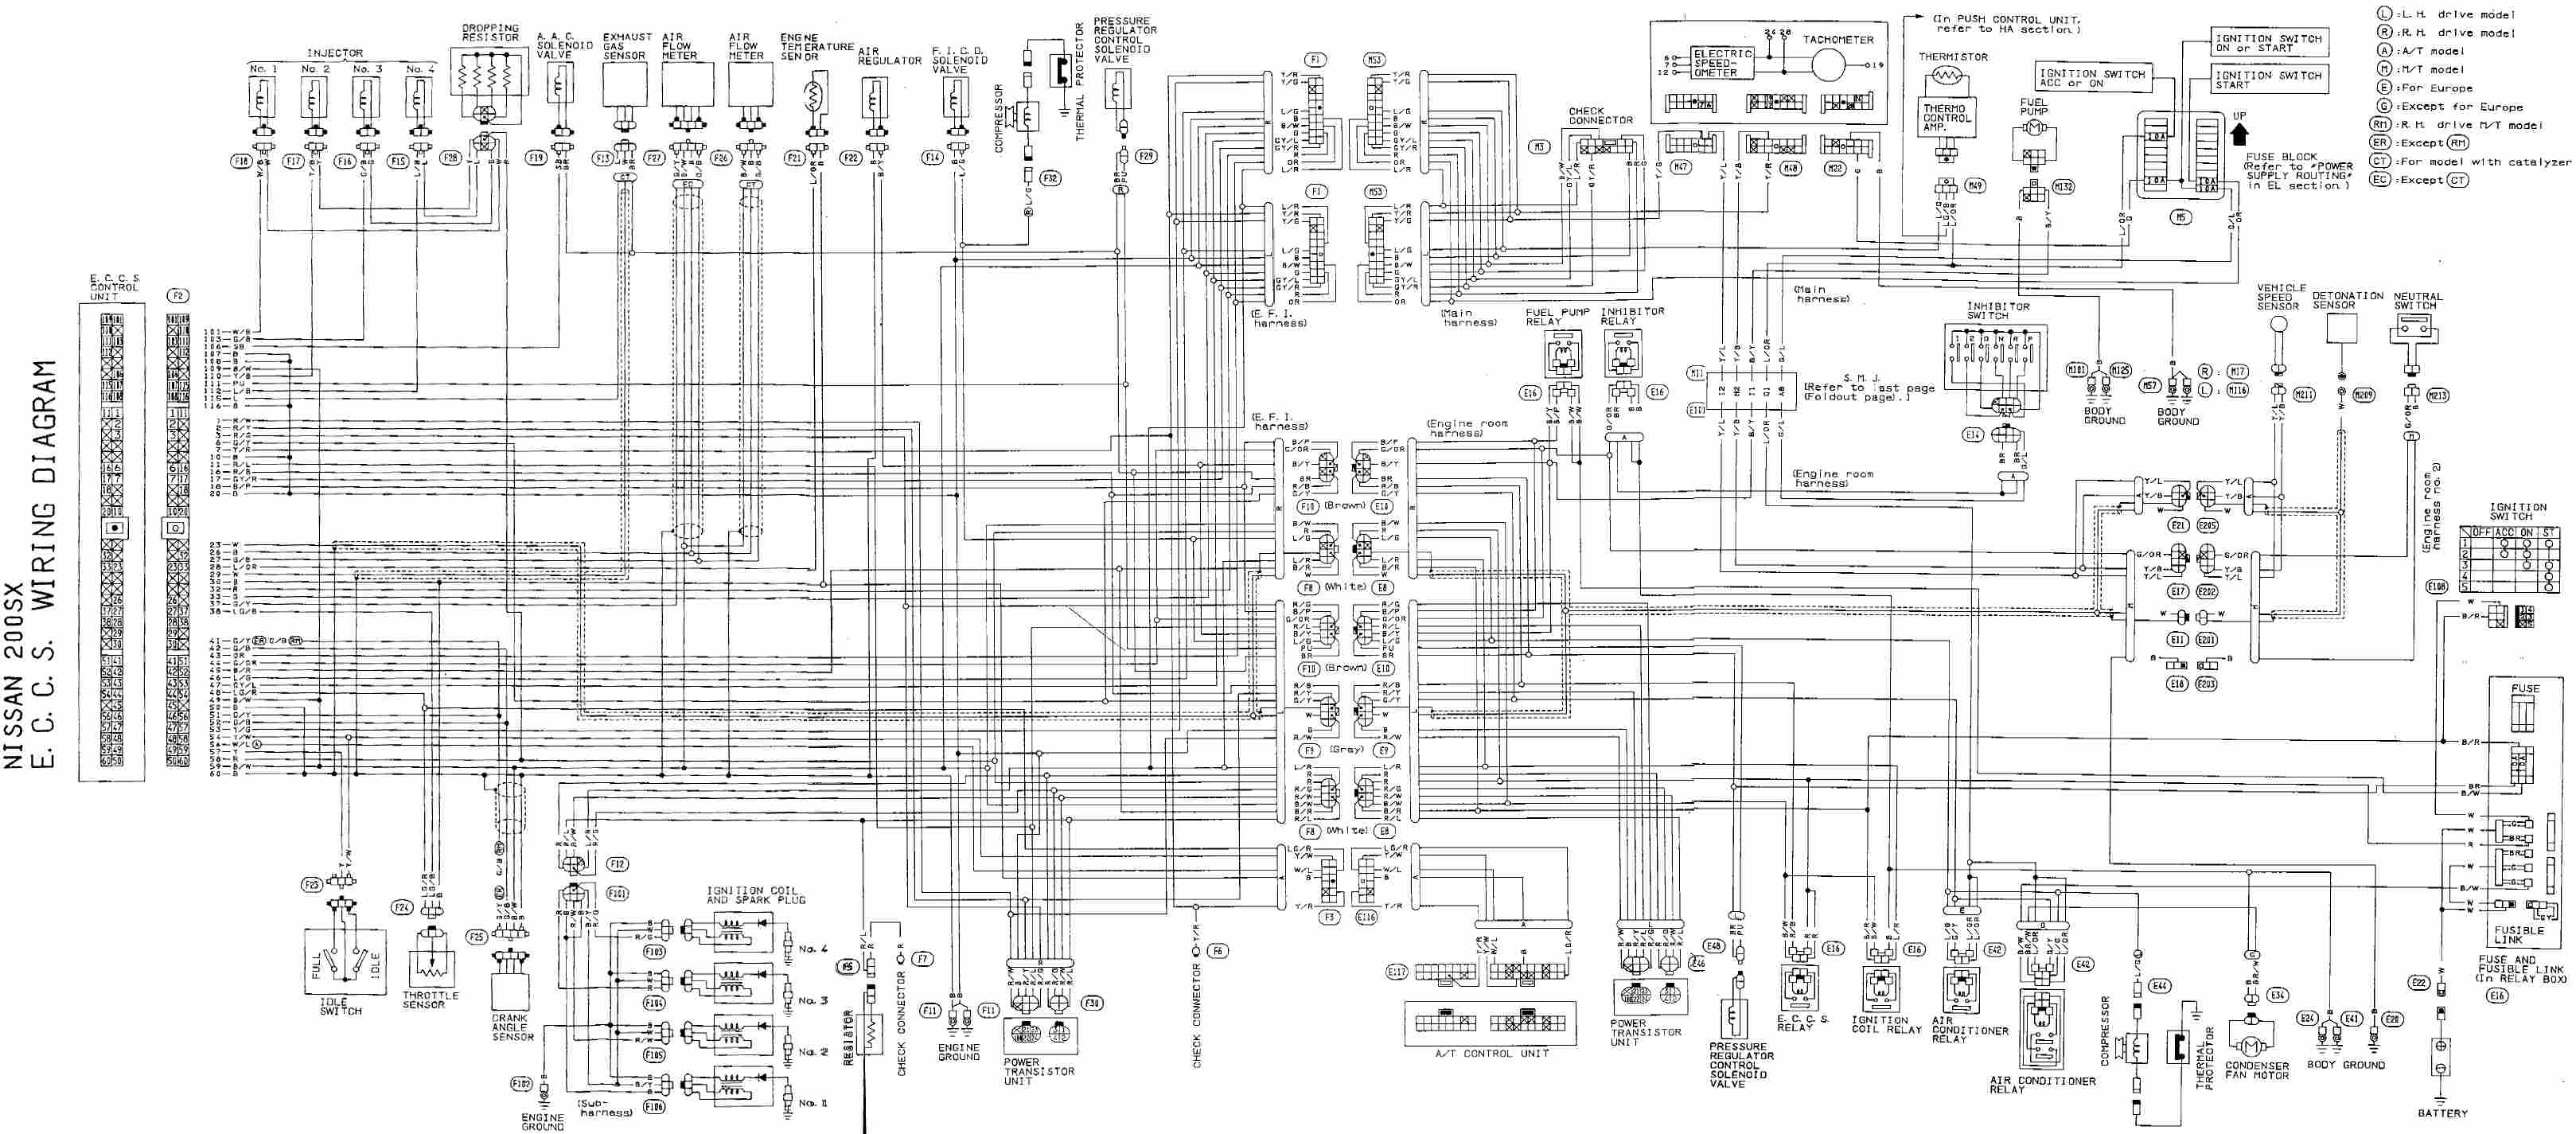 Radio Wiring Diagram Nissan Skyline Will Be A Thing 2005 Frontier Car Manuals Diagrams Pdf Fault Codes Bose Stereo